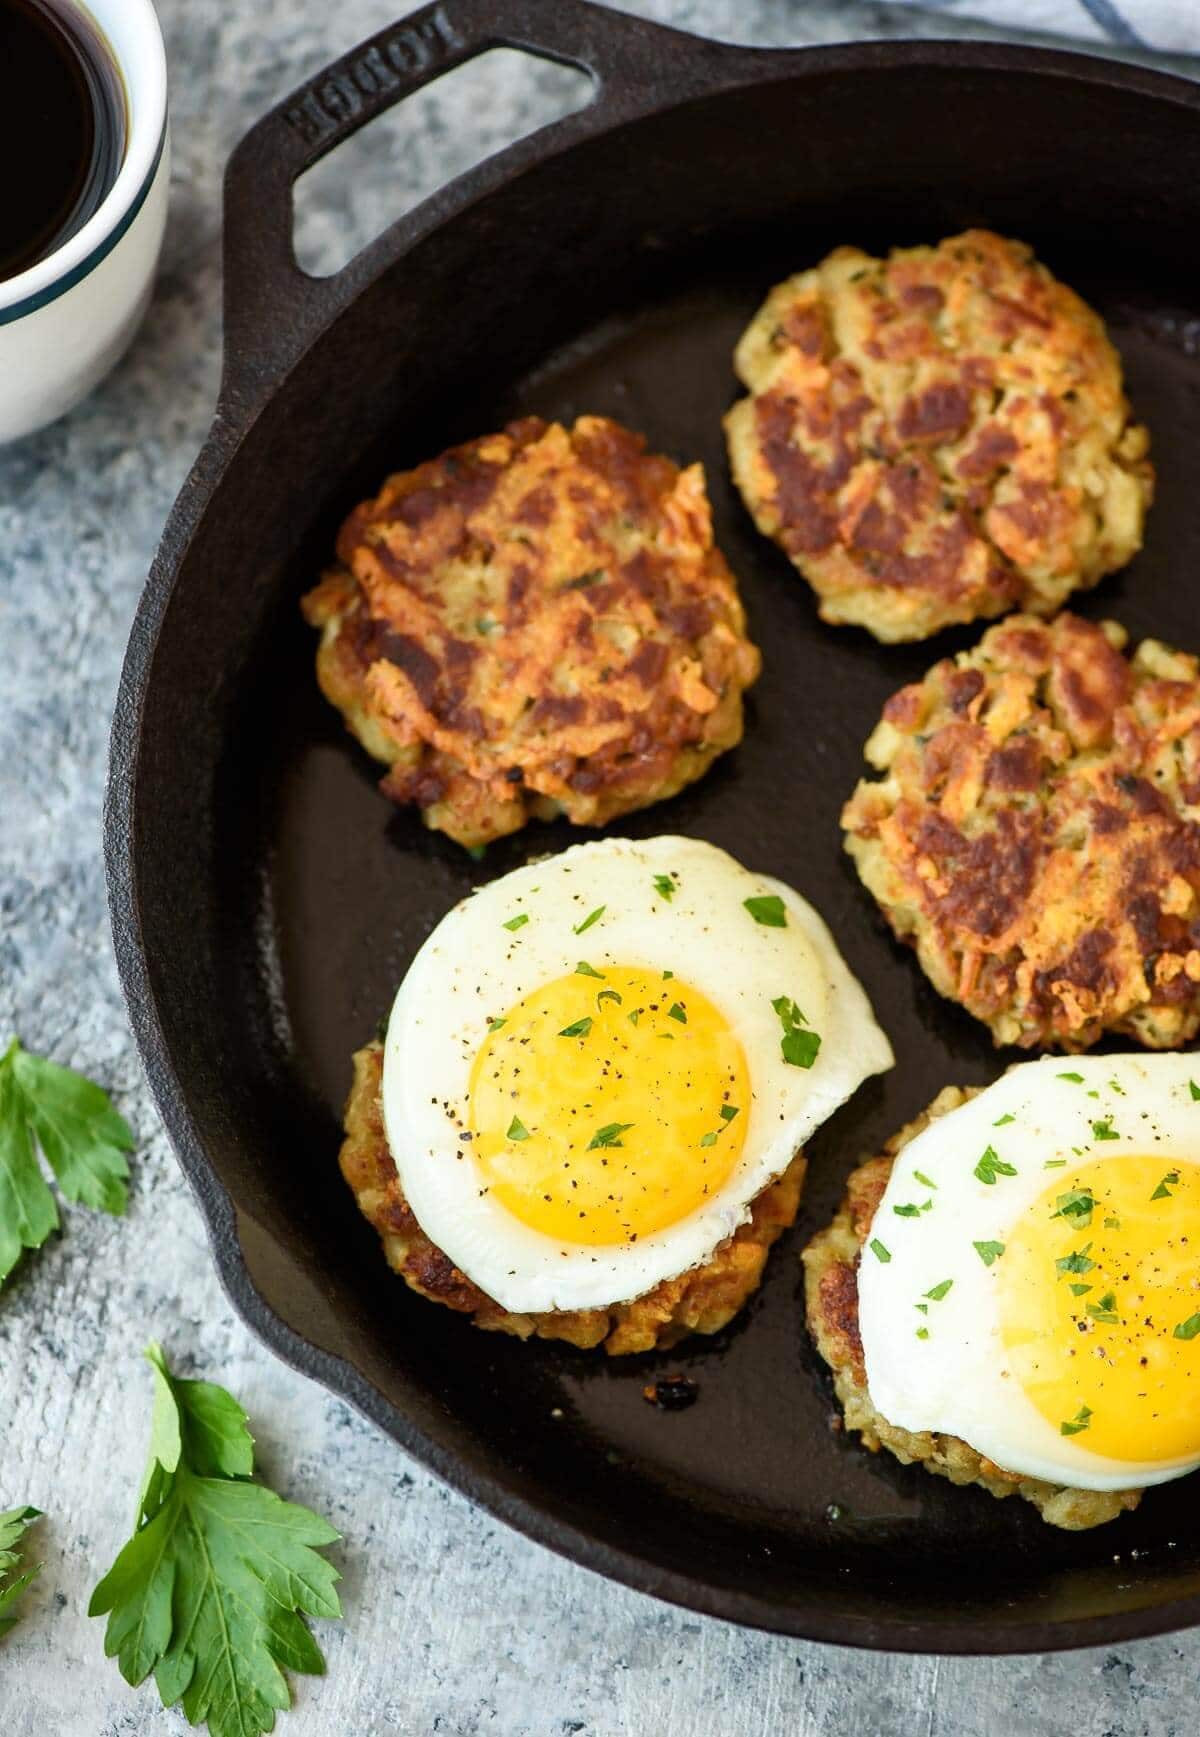 Cheesy Breakfast Stuffing Cakes made with leftover Thanksgiving stuffing.